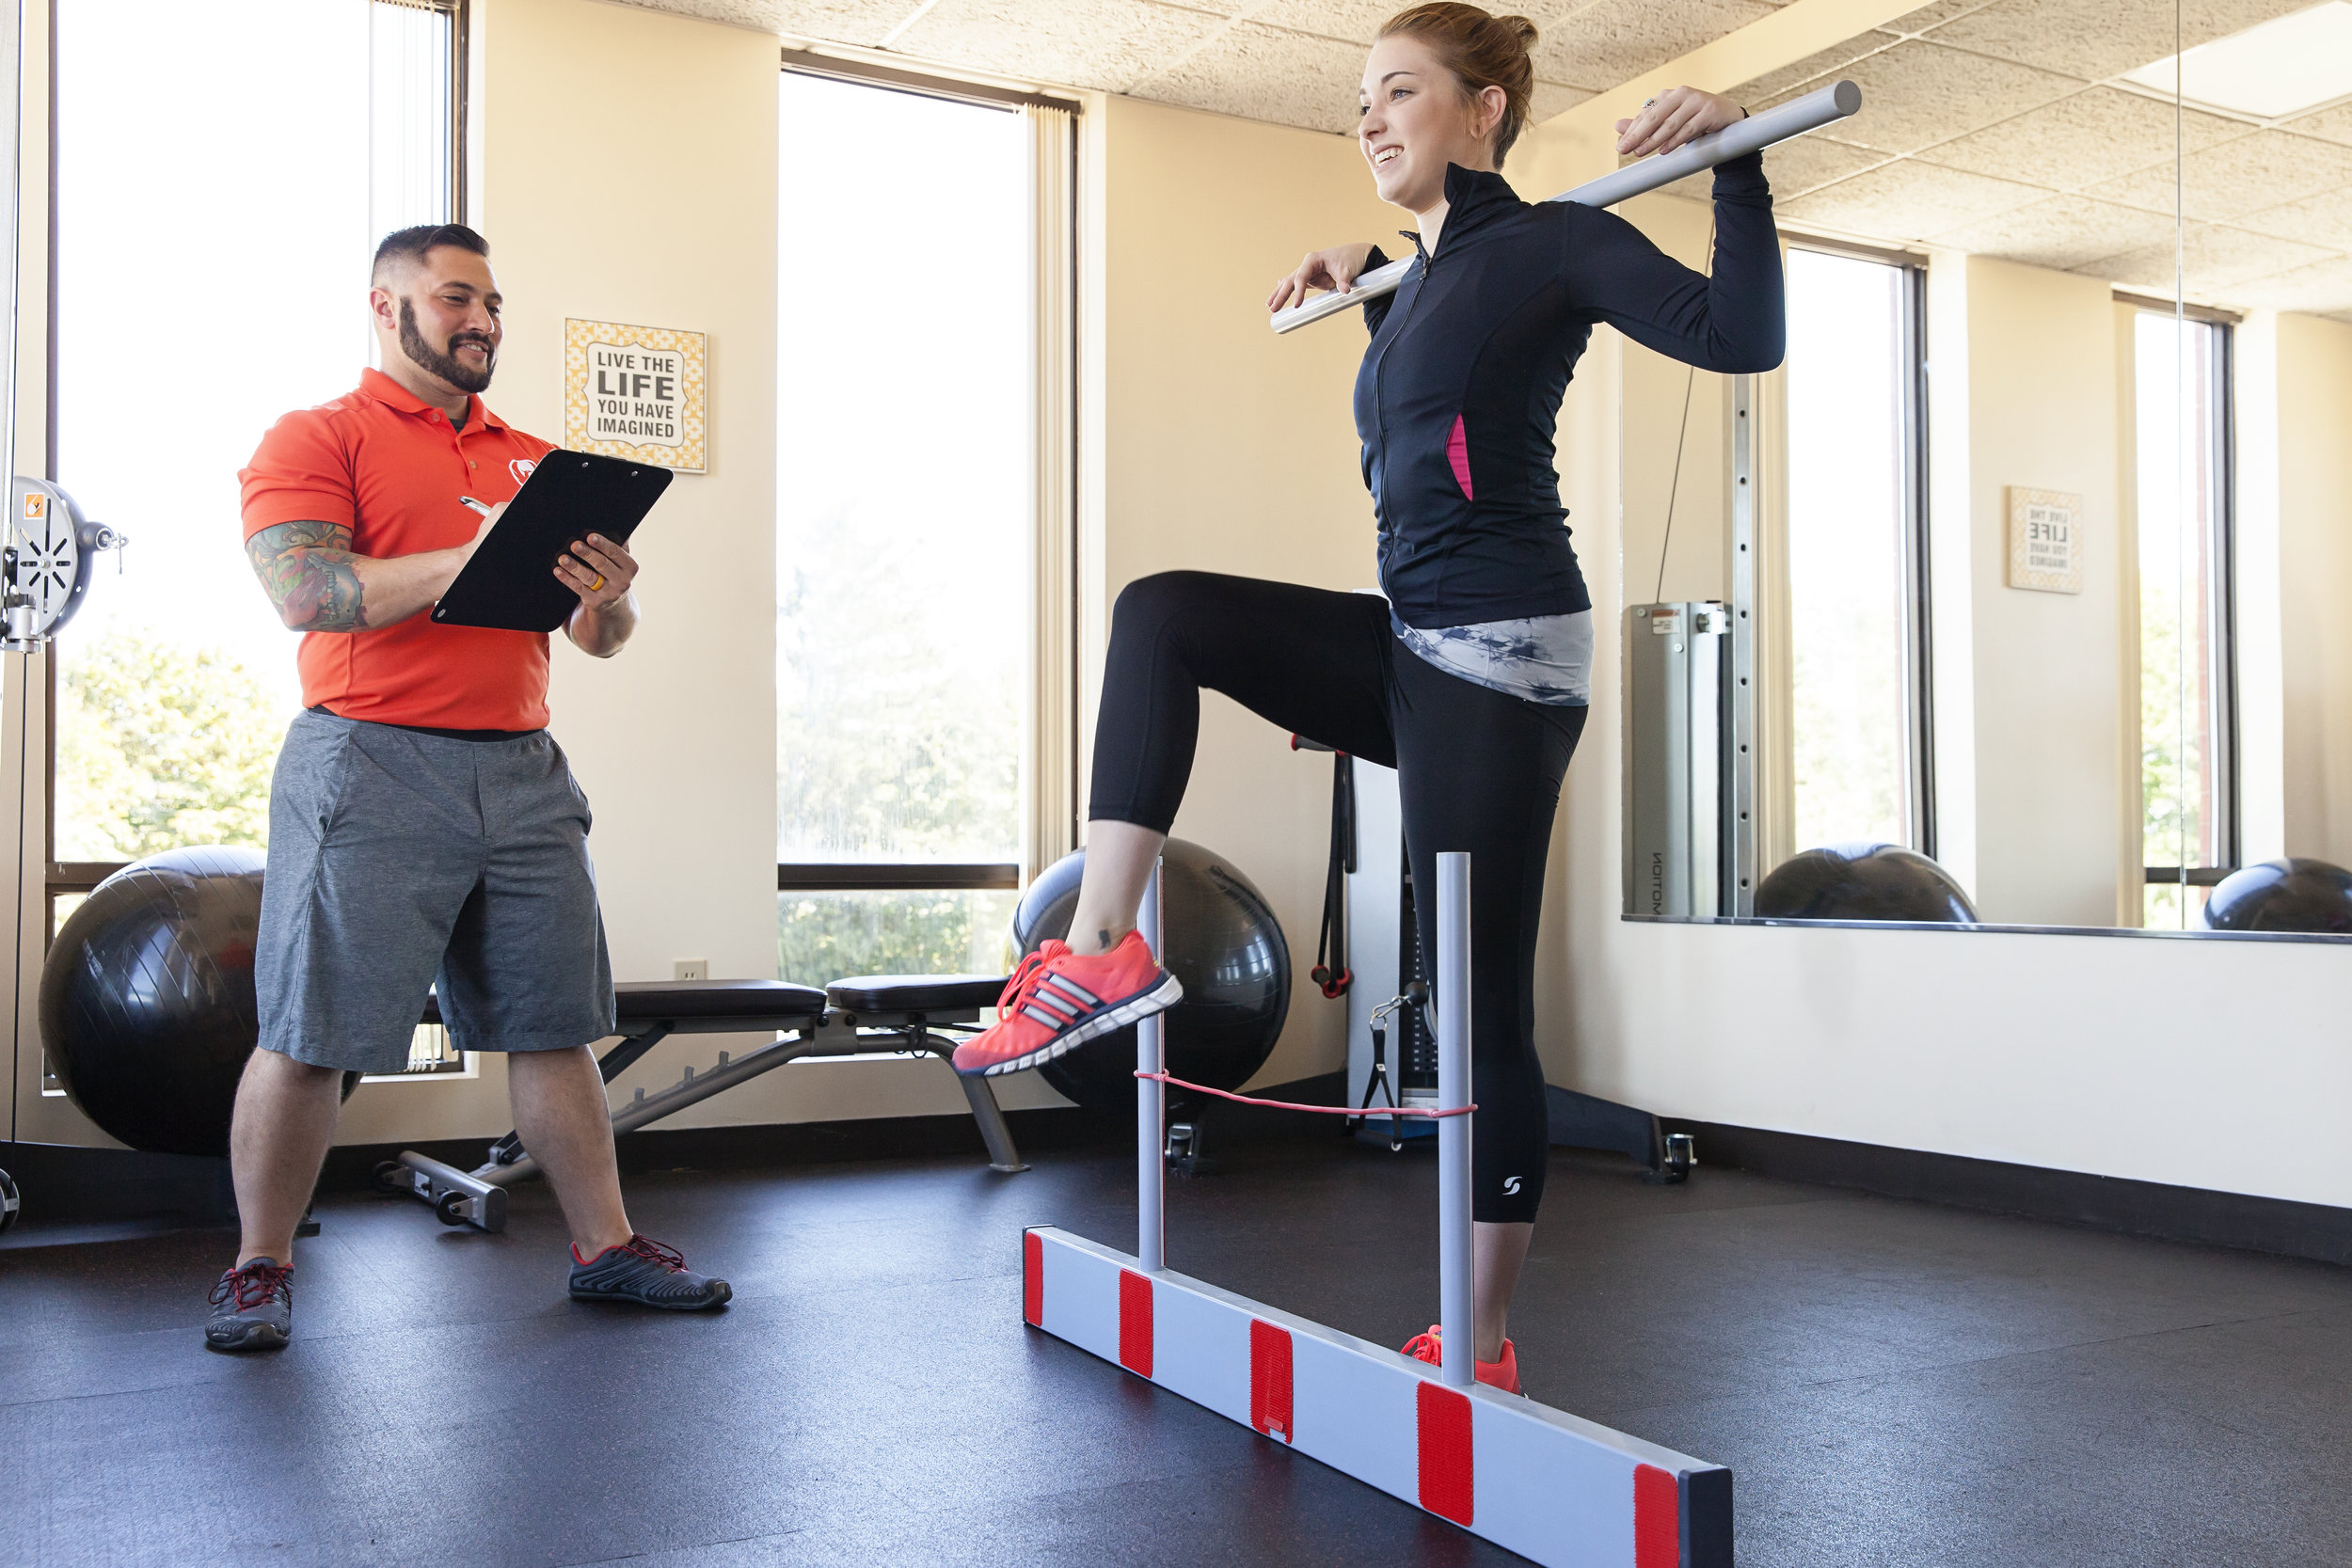 mobility-movement-weight-loss.jpg